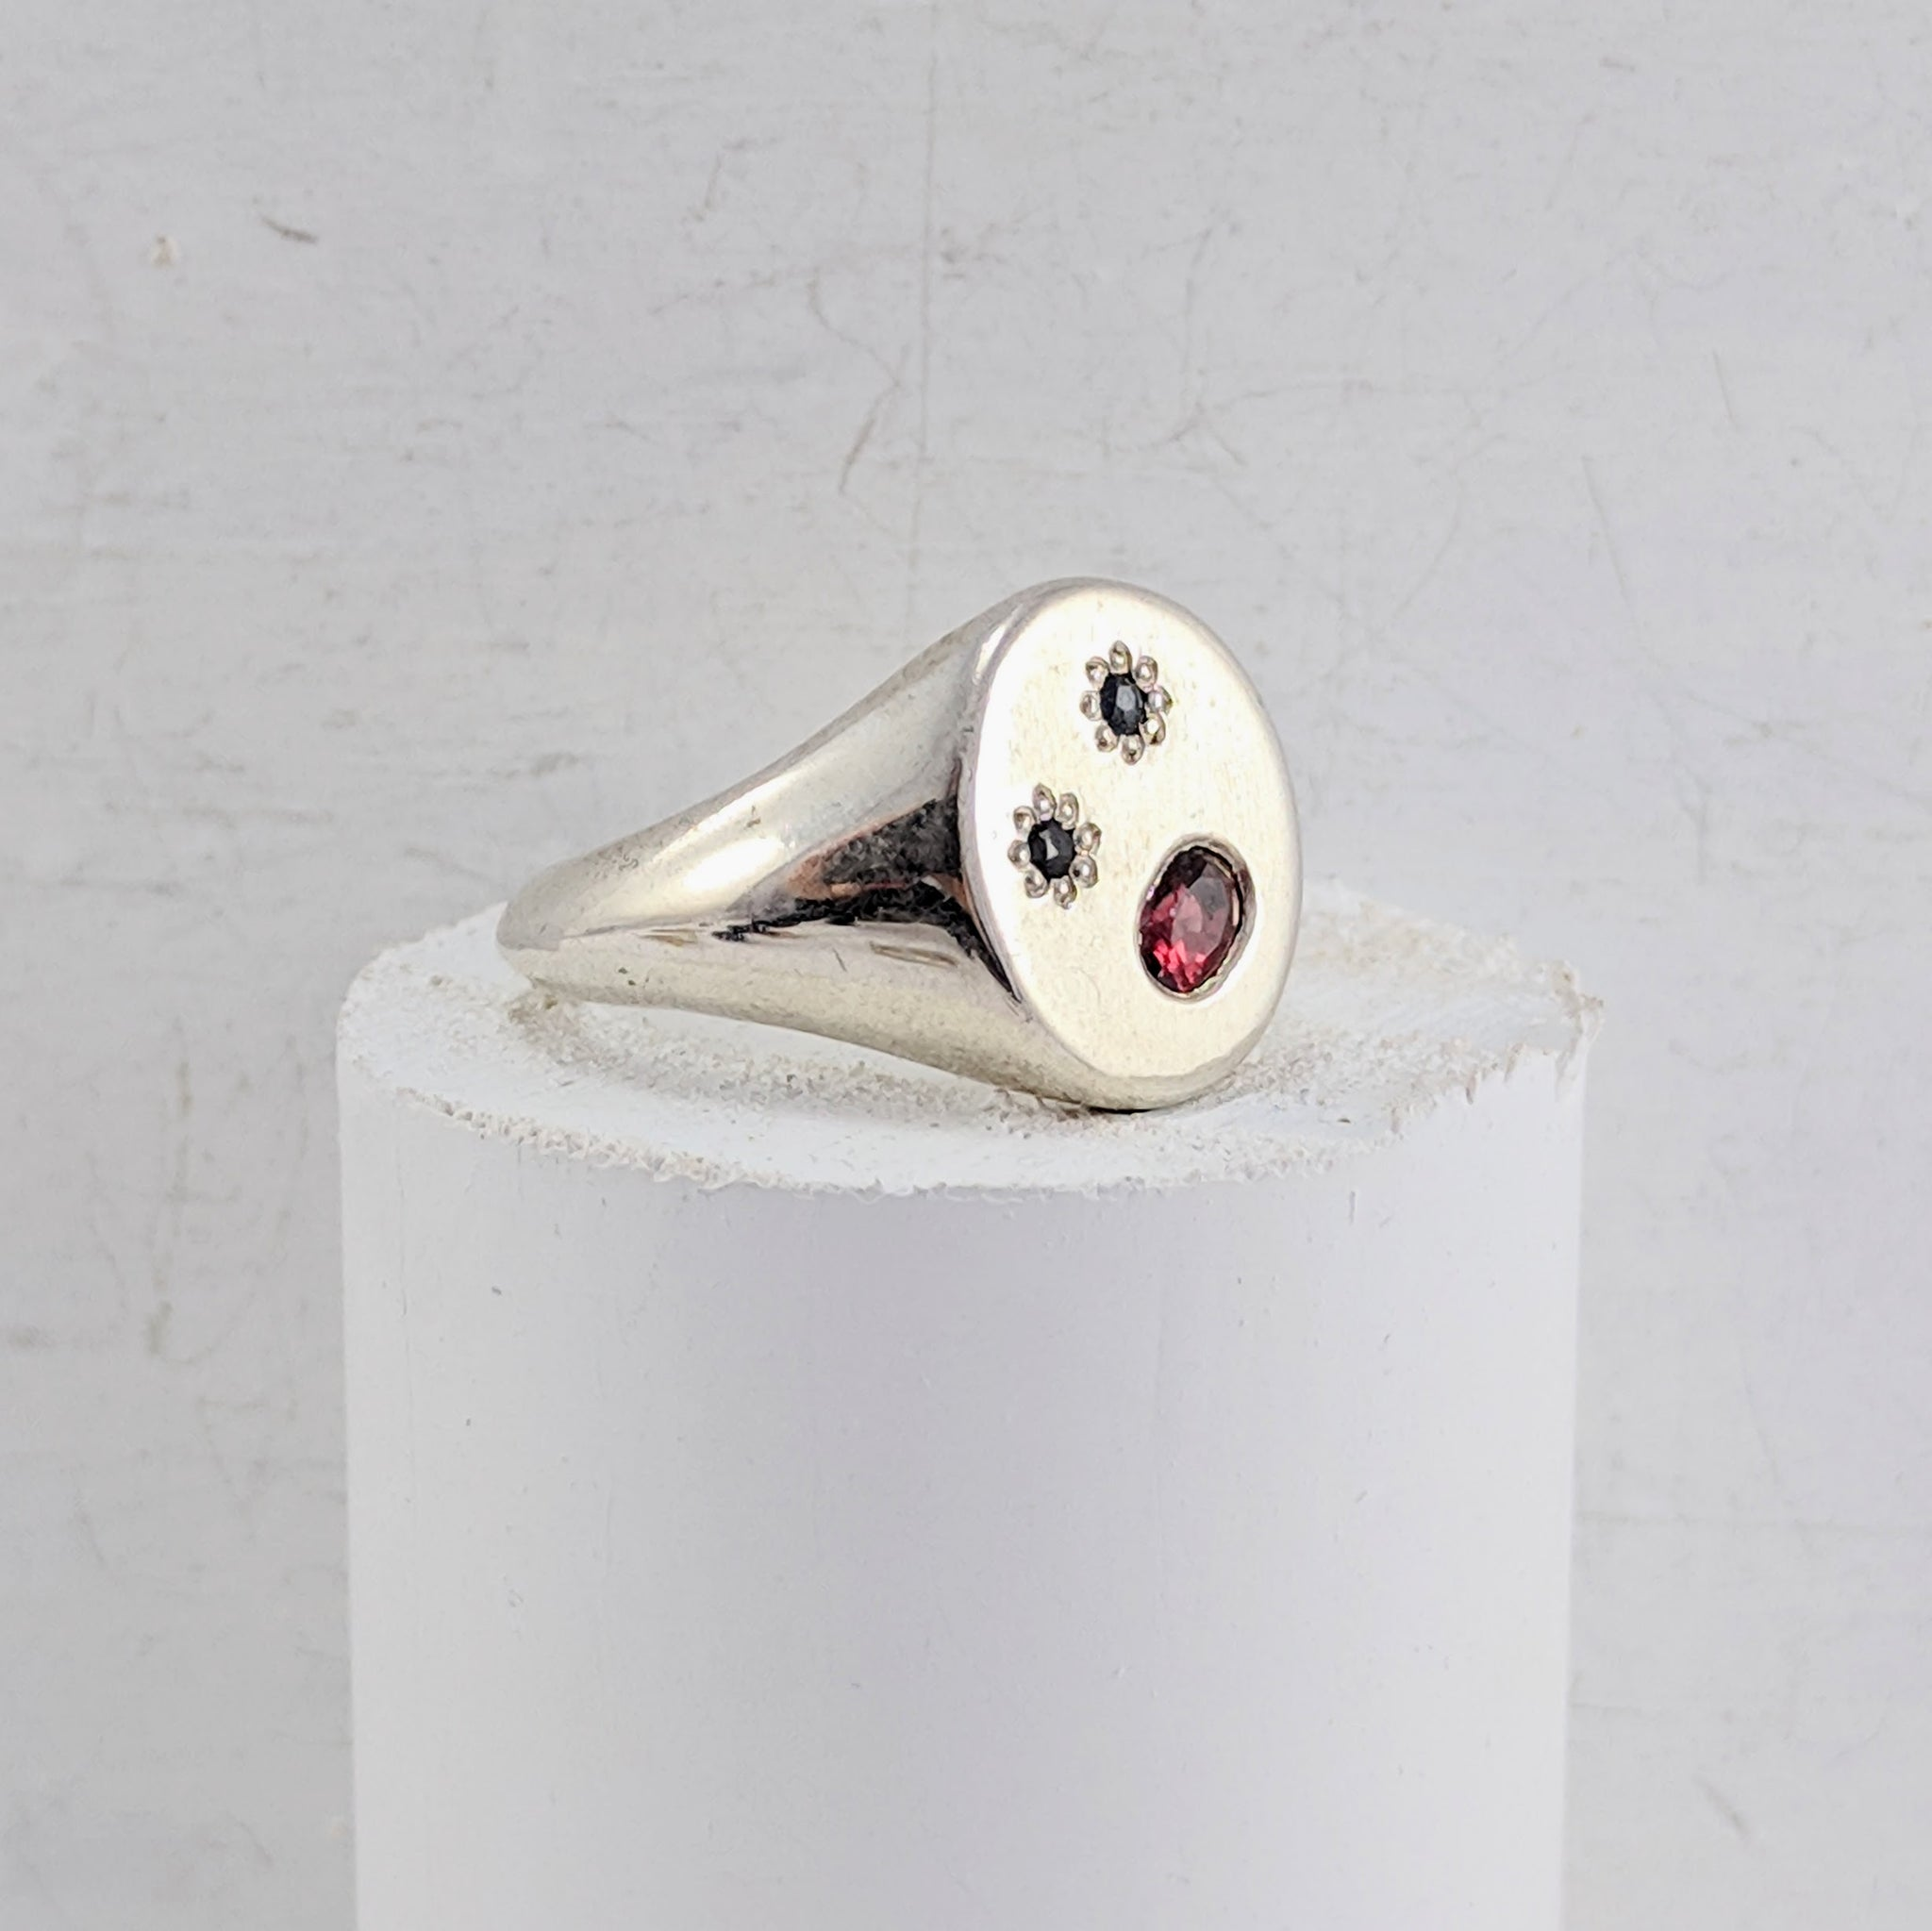 Stone Set Signet Ring